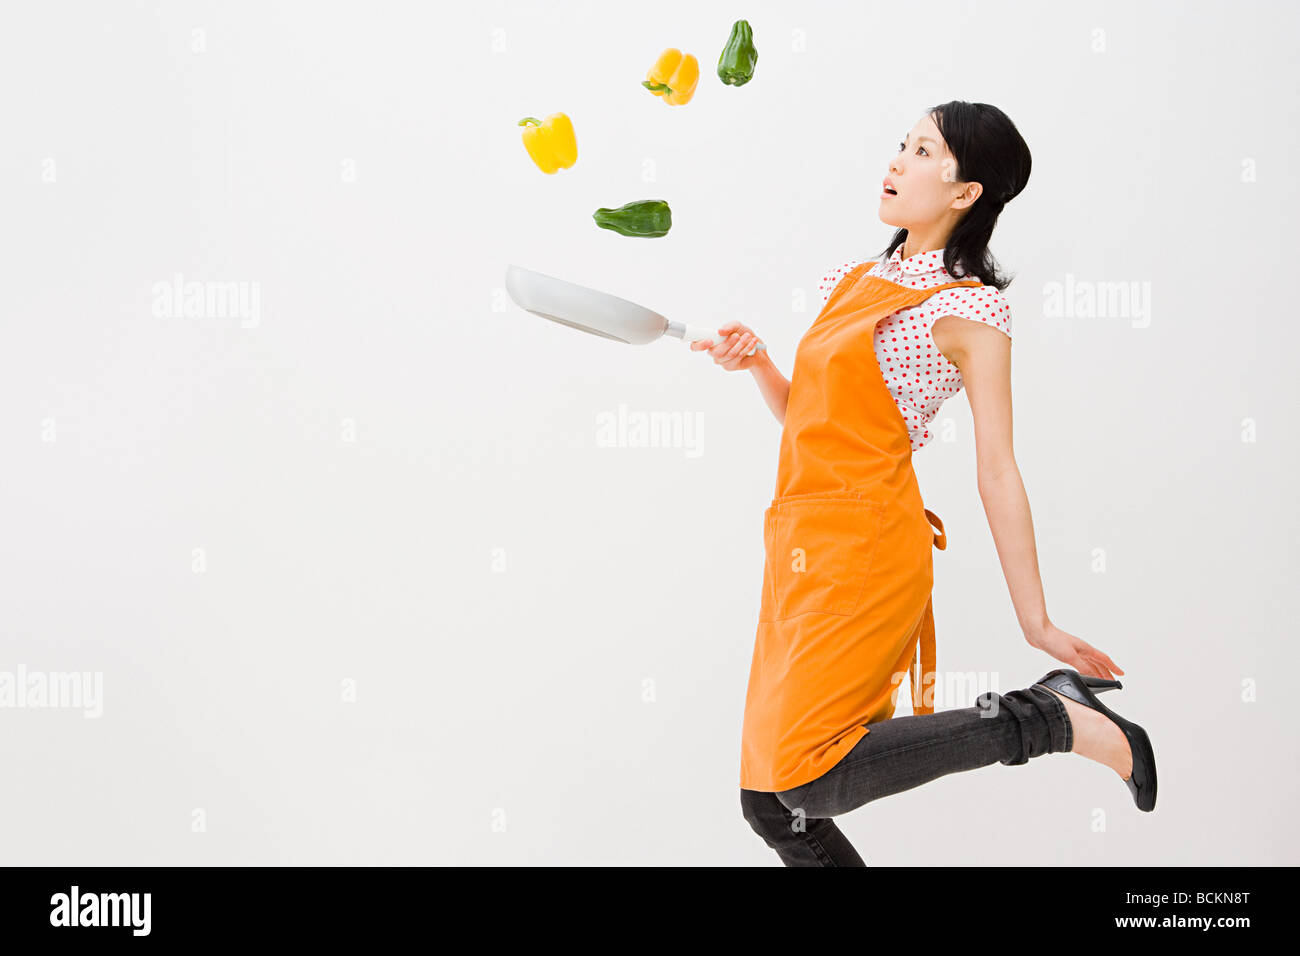 Woman tossing peppers - Stock Image